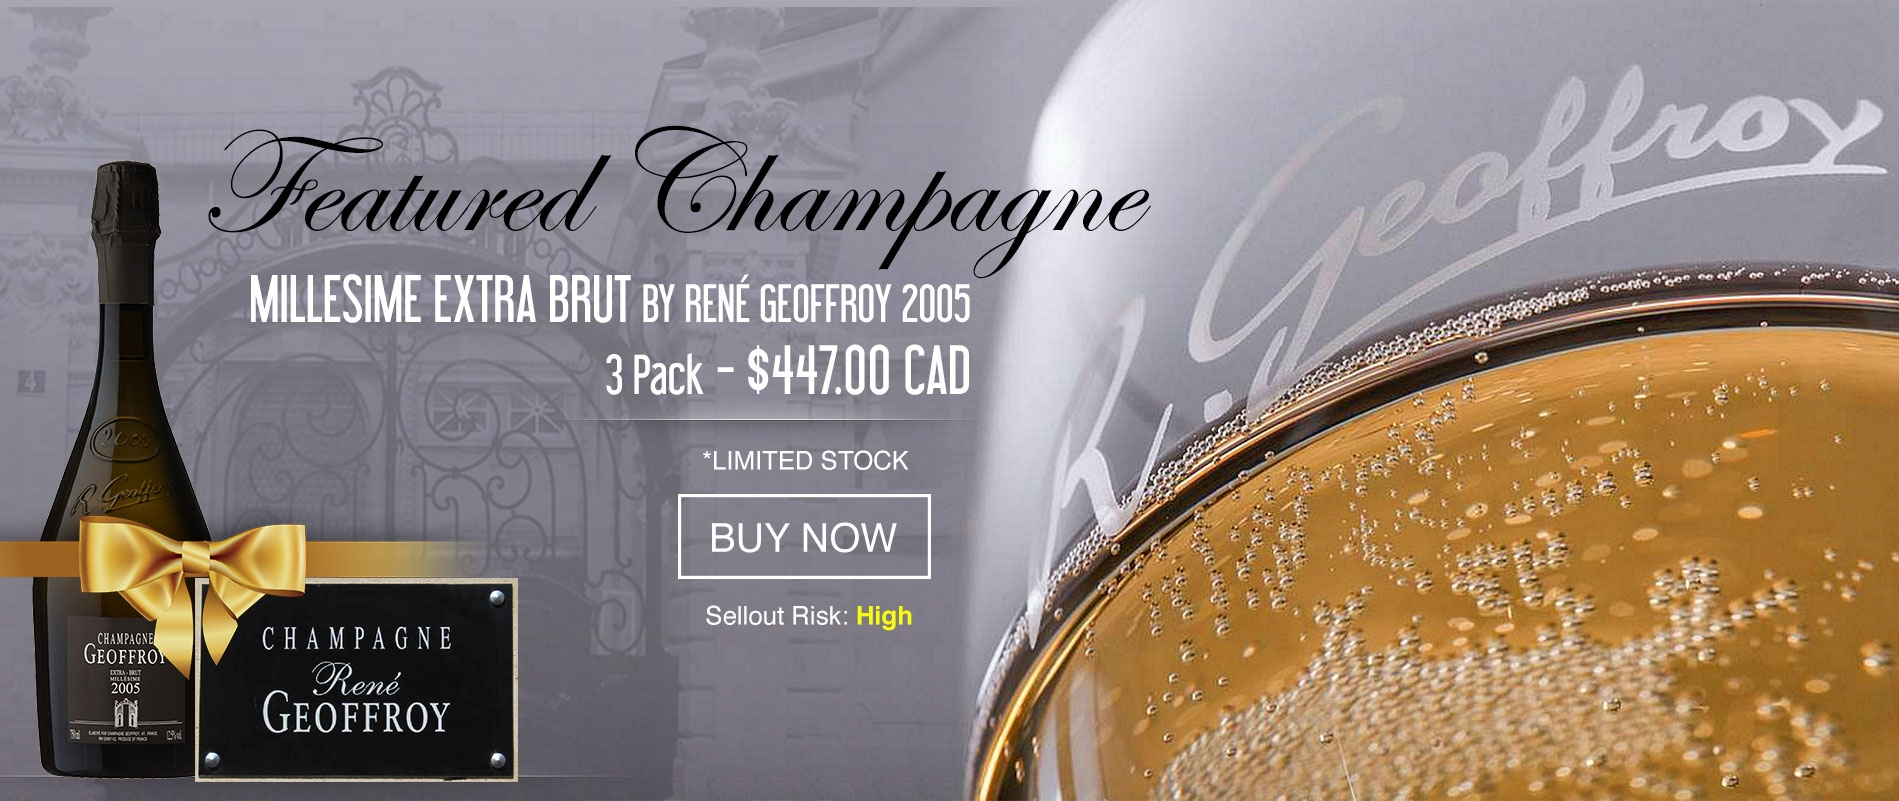 CHAMPAGNE MILLESIME EXTRA BRUT BY RENÉ GEOFFROY 2005